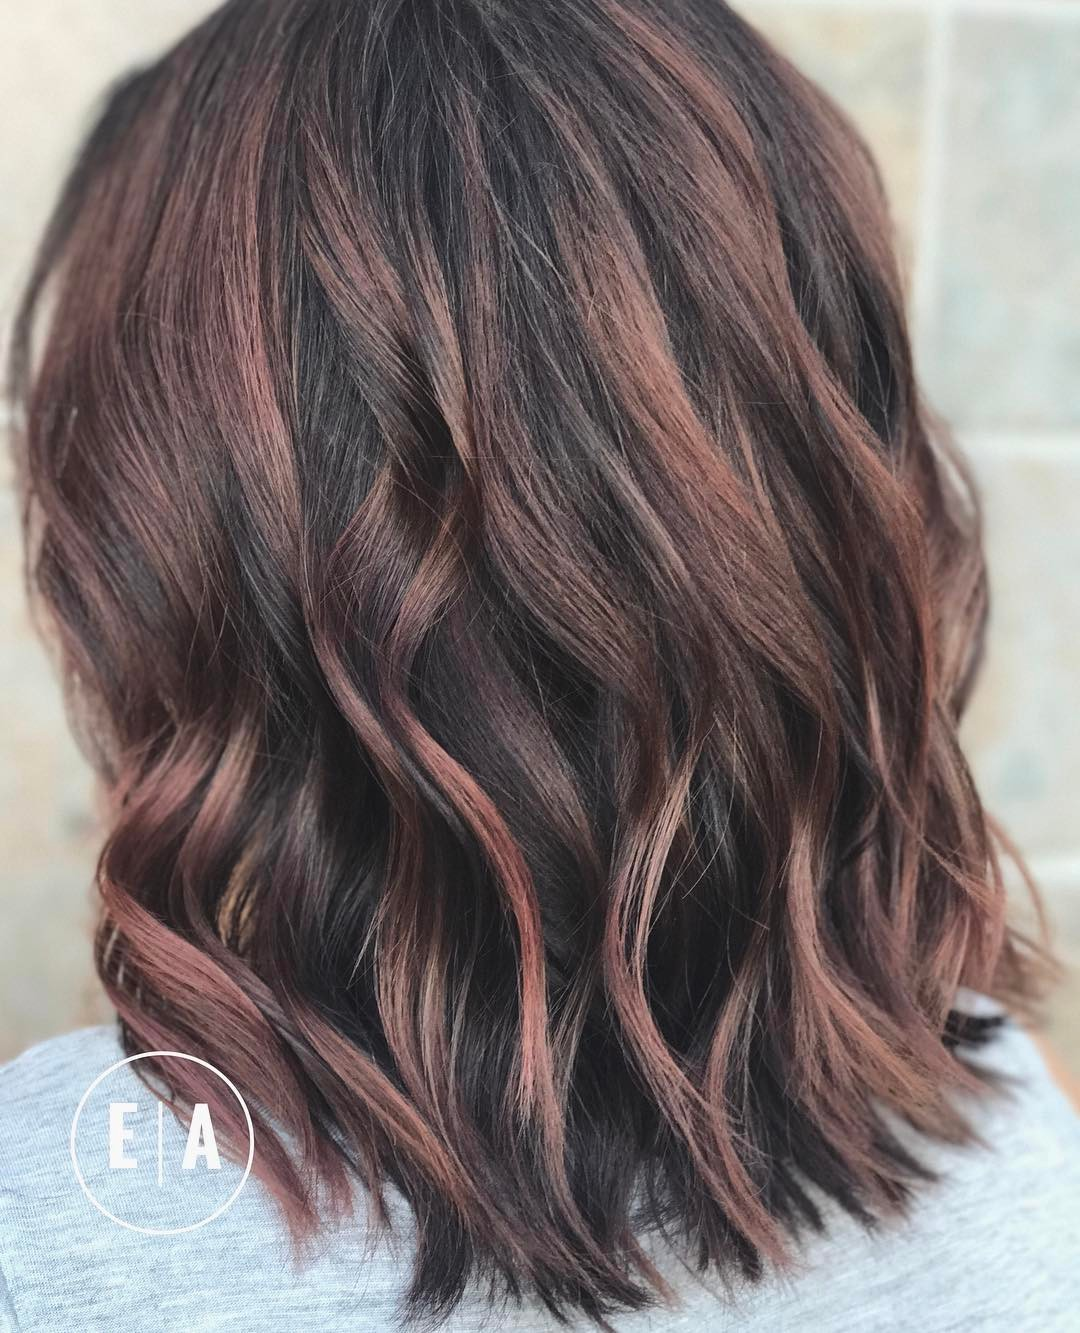 long haircuts and colors 10 lob haircut ideas edgy cuts amp new colors crazyforus 4974 | hottest lob haircut ideas best long bob hairstyles and lob haircuts 2